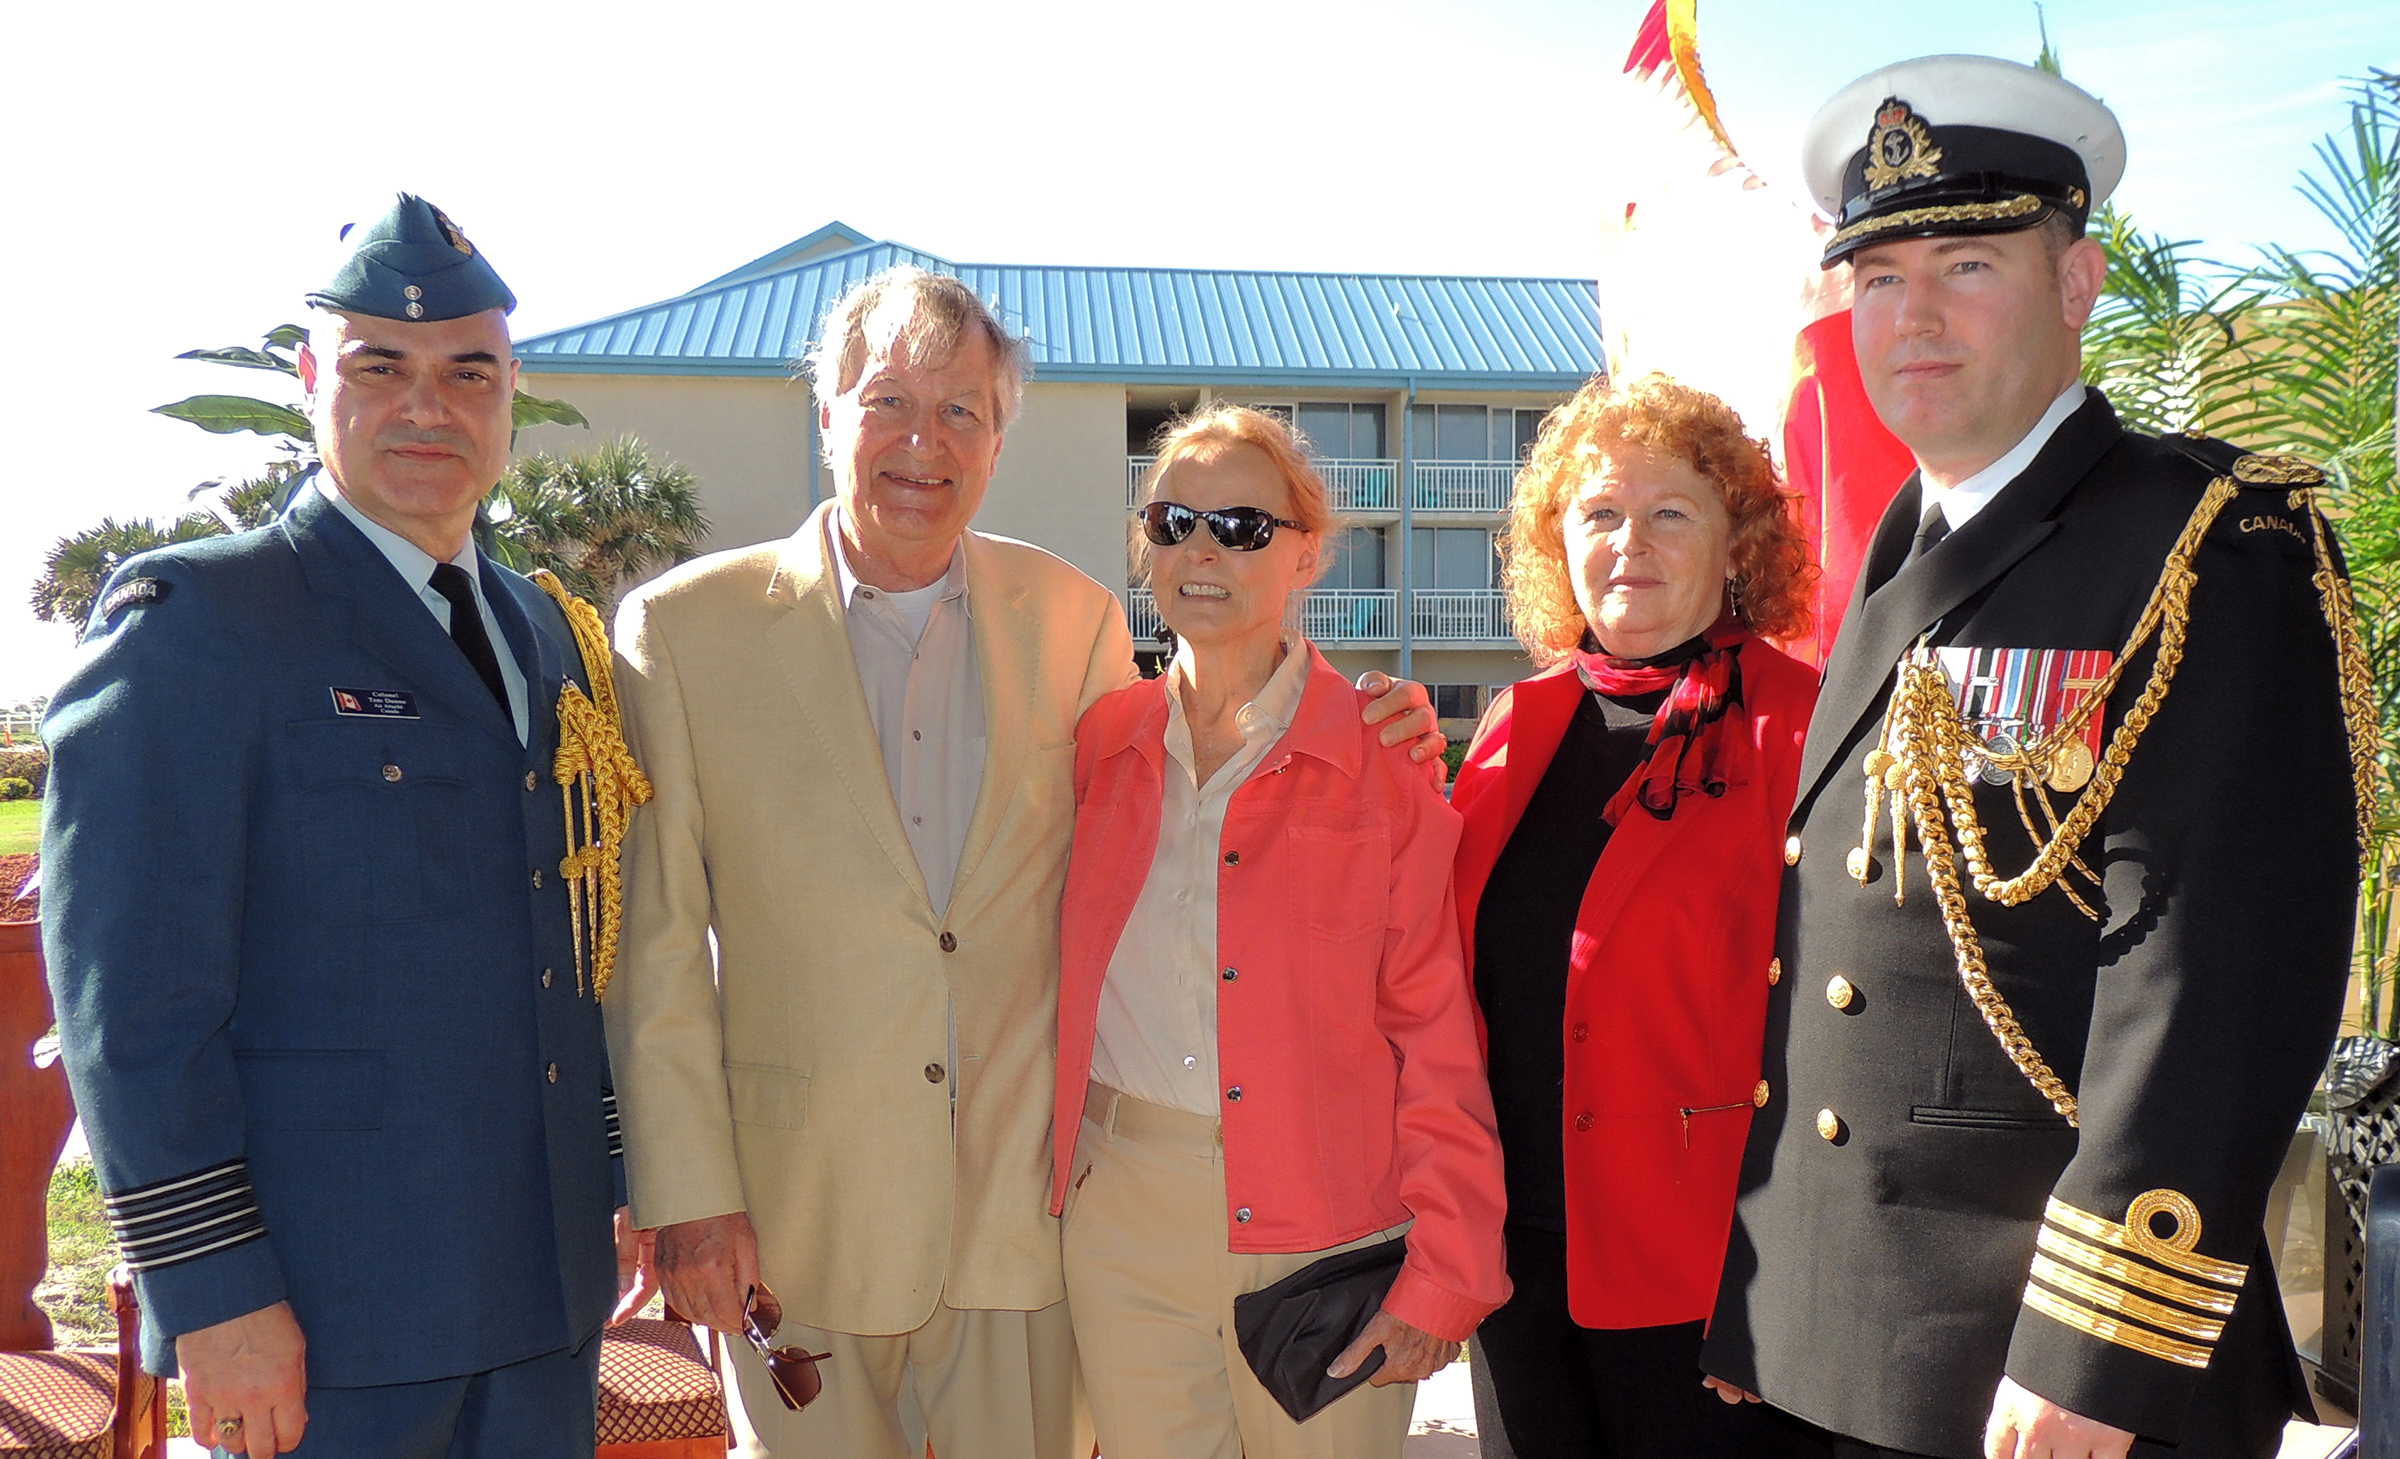 (From left) Colonel Tom Dunne, air attaché at the Embassy of Canada in Washington; Mr. Dick Troy; Mrs. Pauline Troy; Ms Susan Harper, Consul General of Canada in Miami; and Captain (Navy) Kristjan Monaghan, naval attaché at the Embassy of Canada; paused for a photo before the formal ceremony commemorating Lieutenant Barry Troy began. PHOTO: Joanna Calder, RCAF public affairs